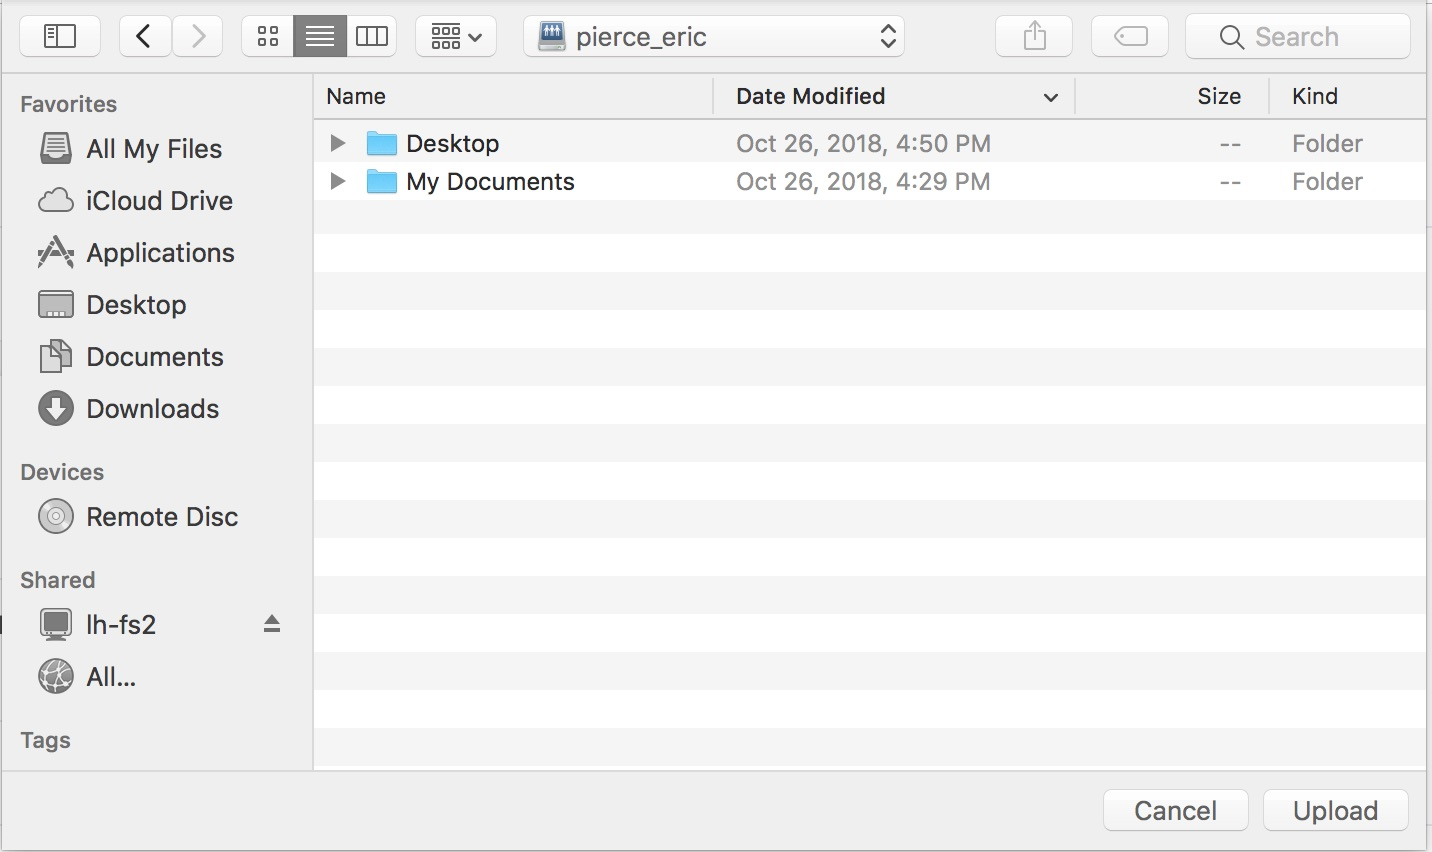 Image of files in share folder